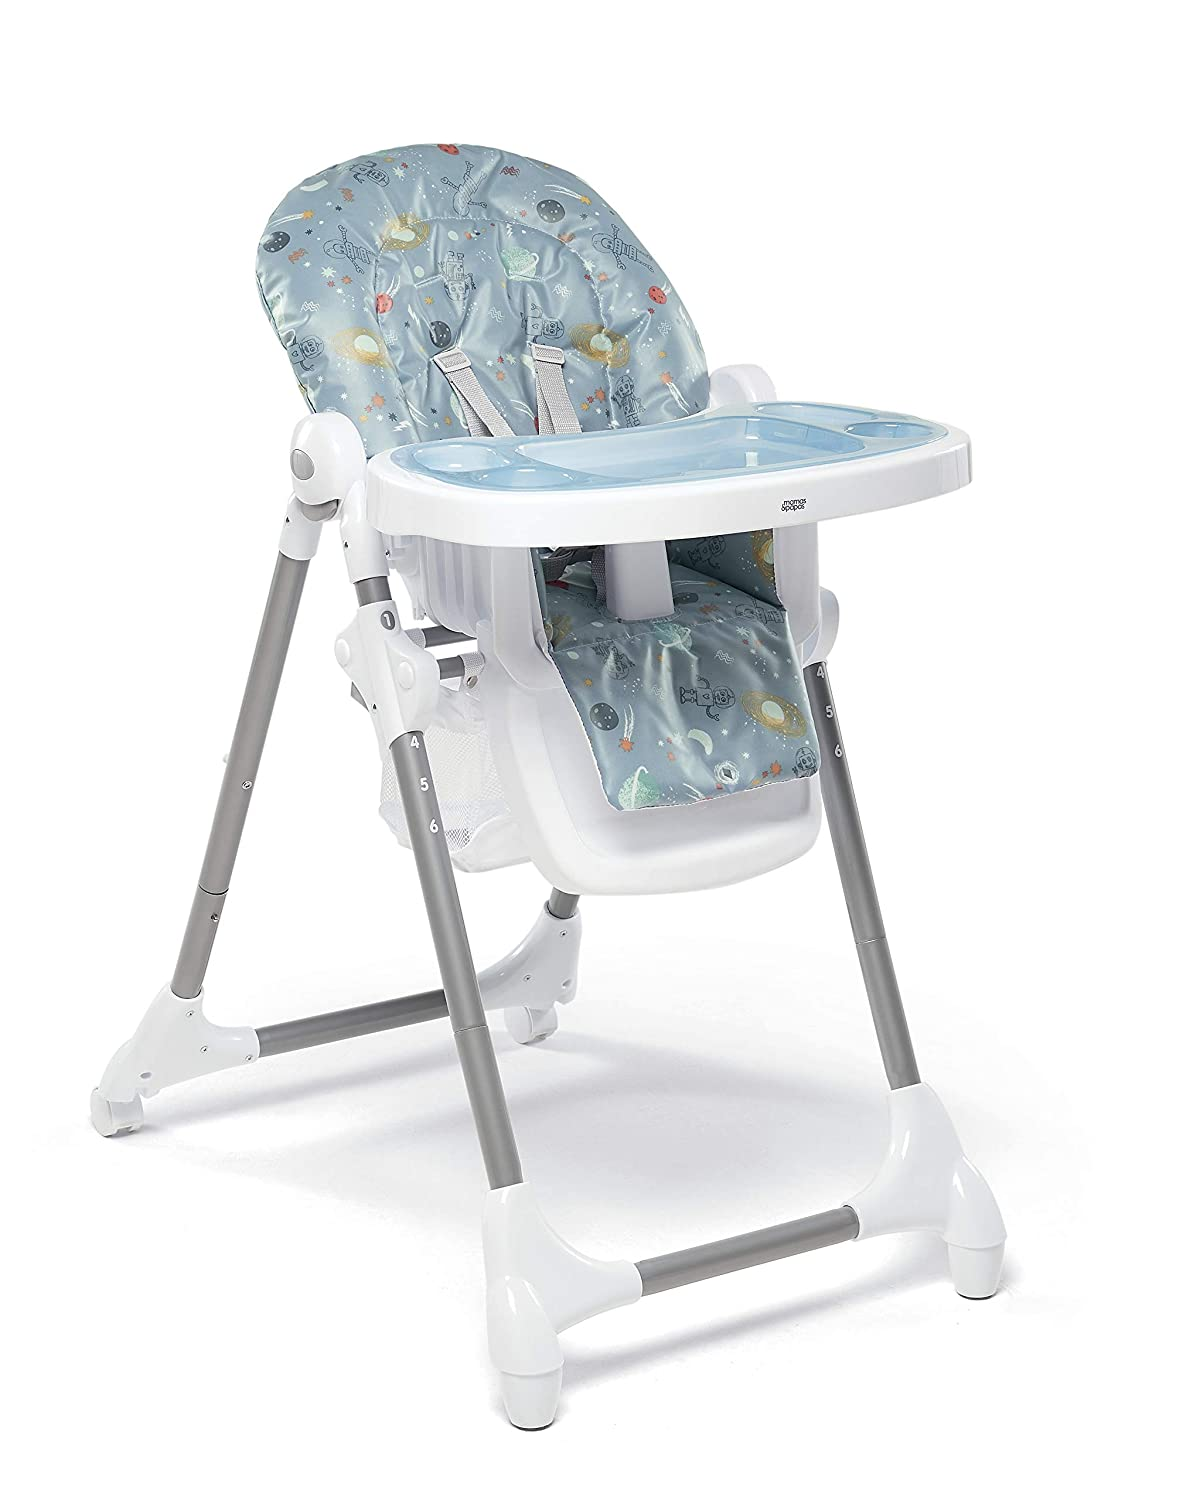 Mamas & Papas Adjustable Baby Highchair, Removable Tray - Space Robots 1152FB400